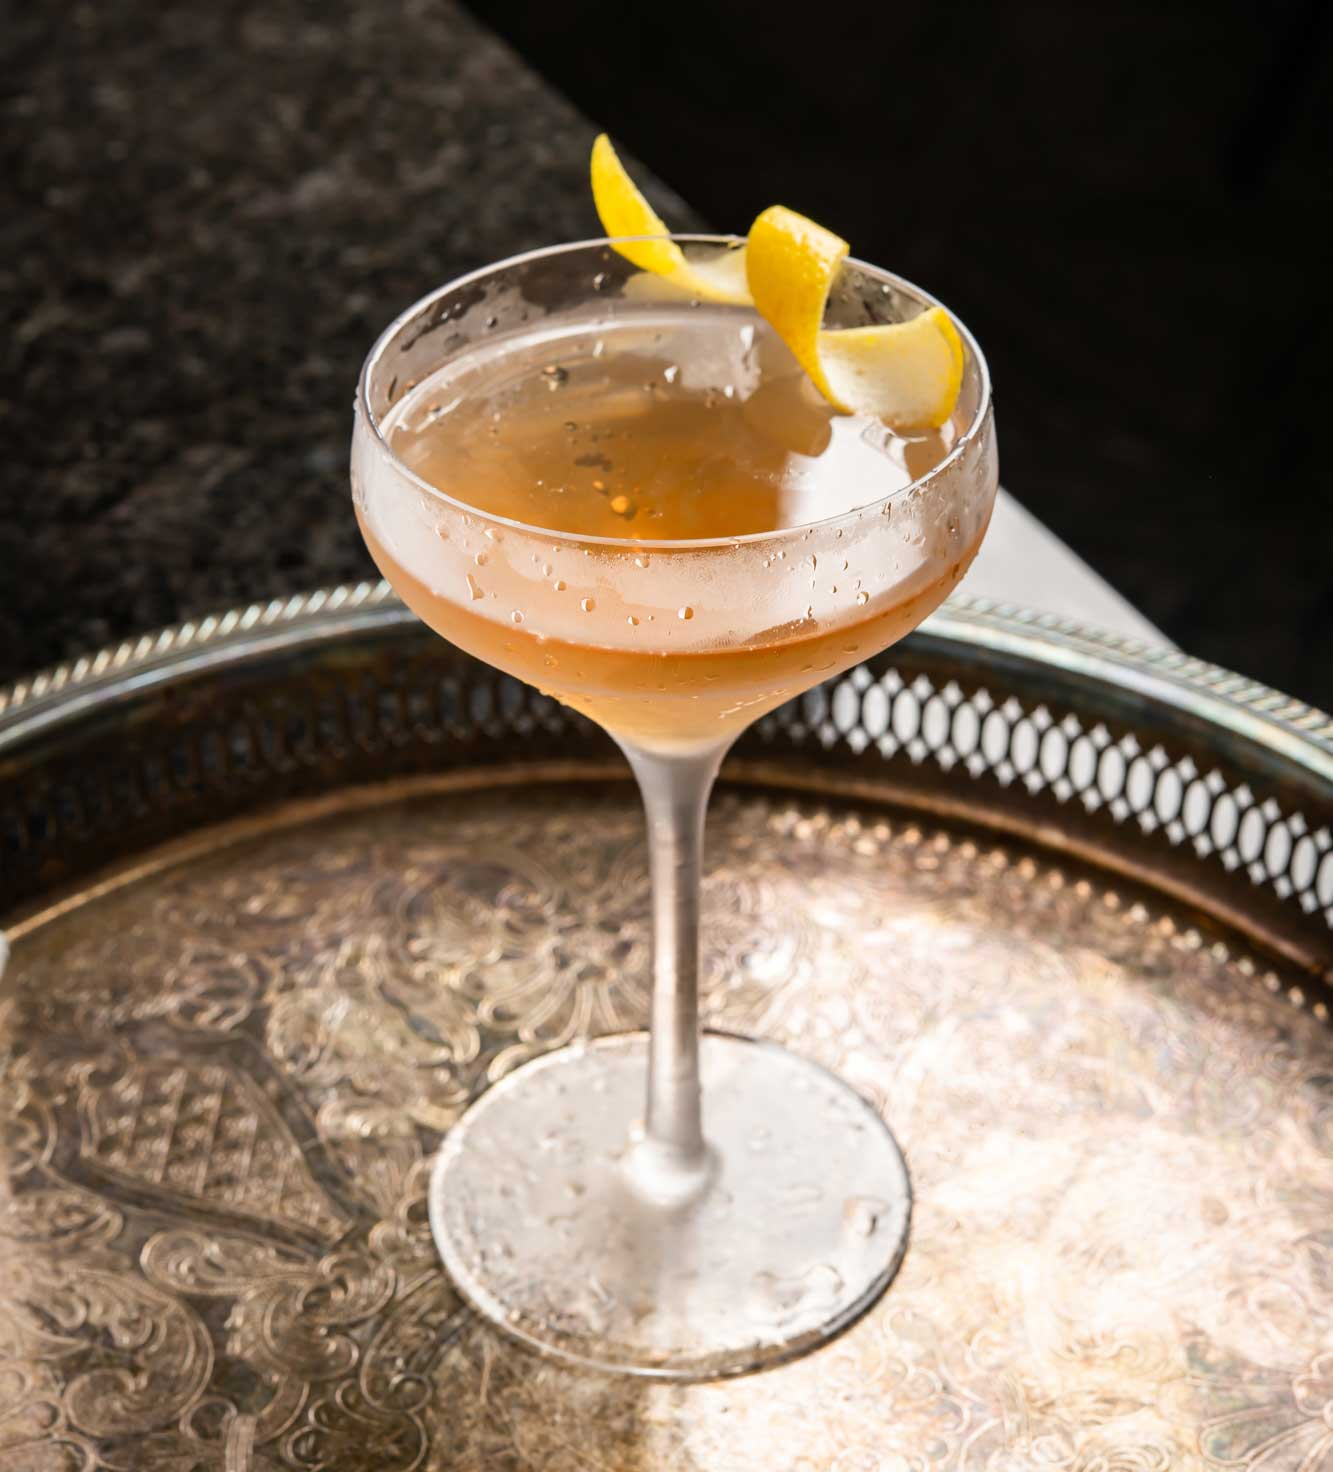 An example of the El Presidente, the mixed drink (cocktail) featuring light rum, Comoz Vermouth Blanc or Dolin Blanc Vermouth de Chambéry, curaçao, and grenadine; photo by Jose Pereiro